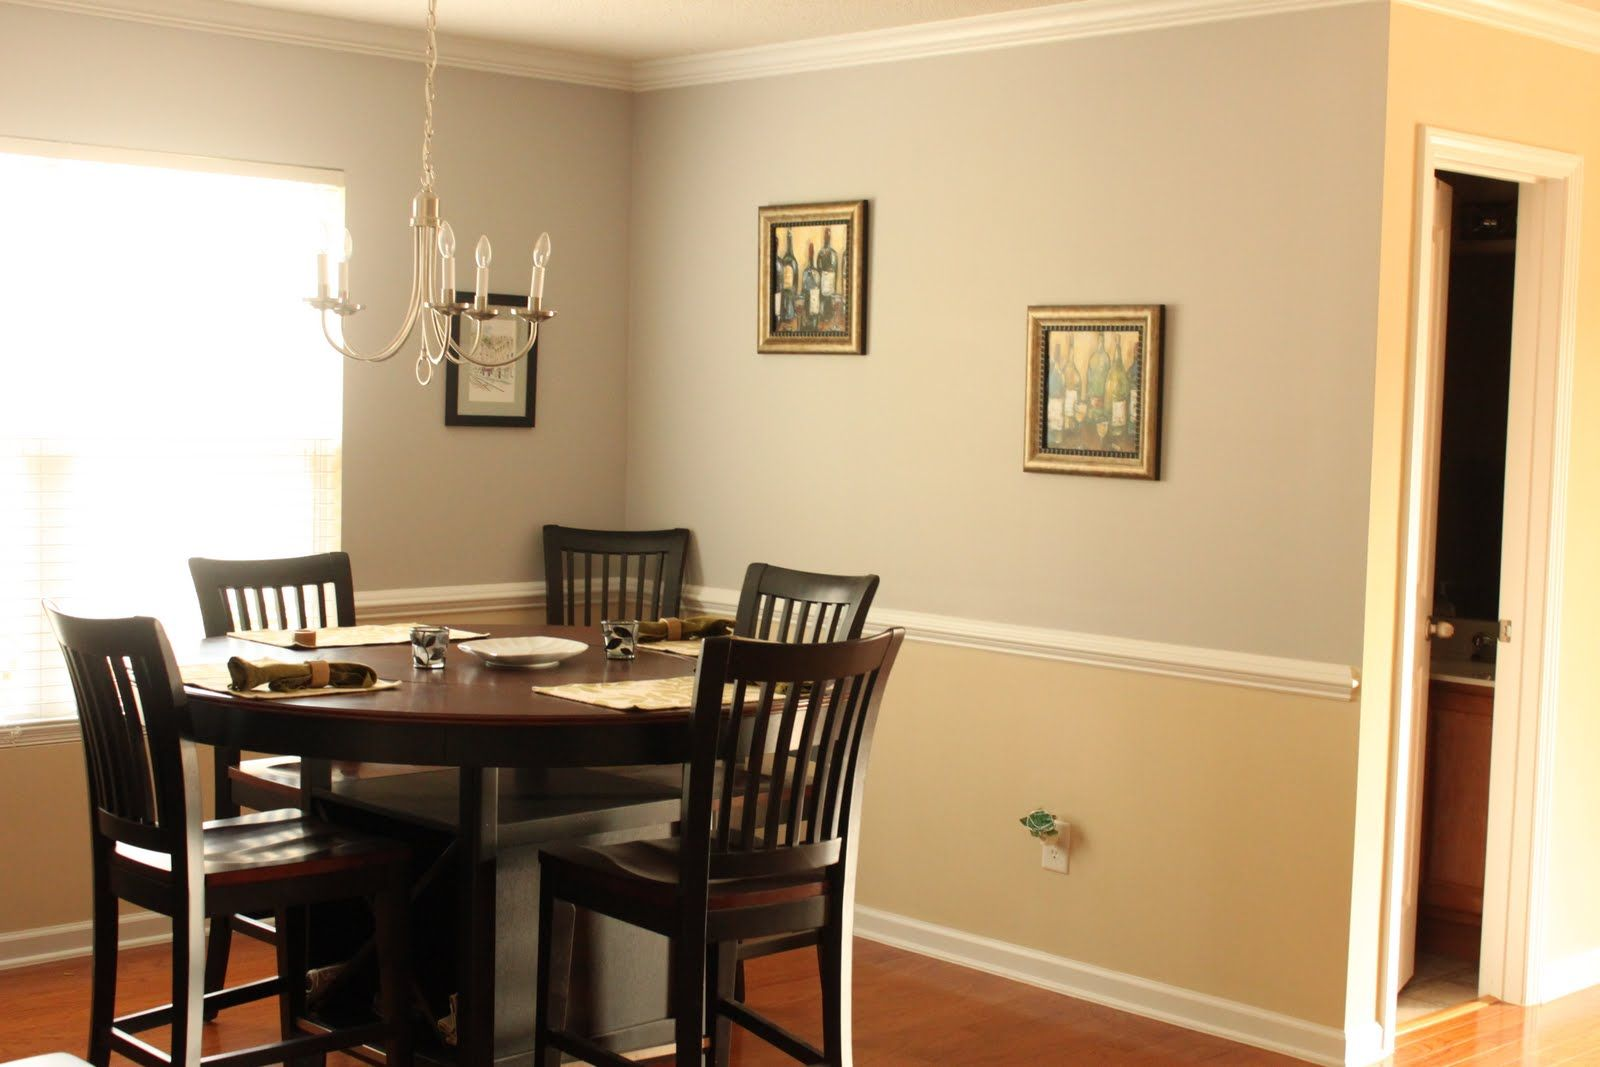 Painting Dining Room painting dining room of goodly painting dining room painting dining room the creative Gray And Beige Scheme Best Color To Paint A Interior Room For Dining Room Decorating With